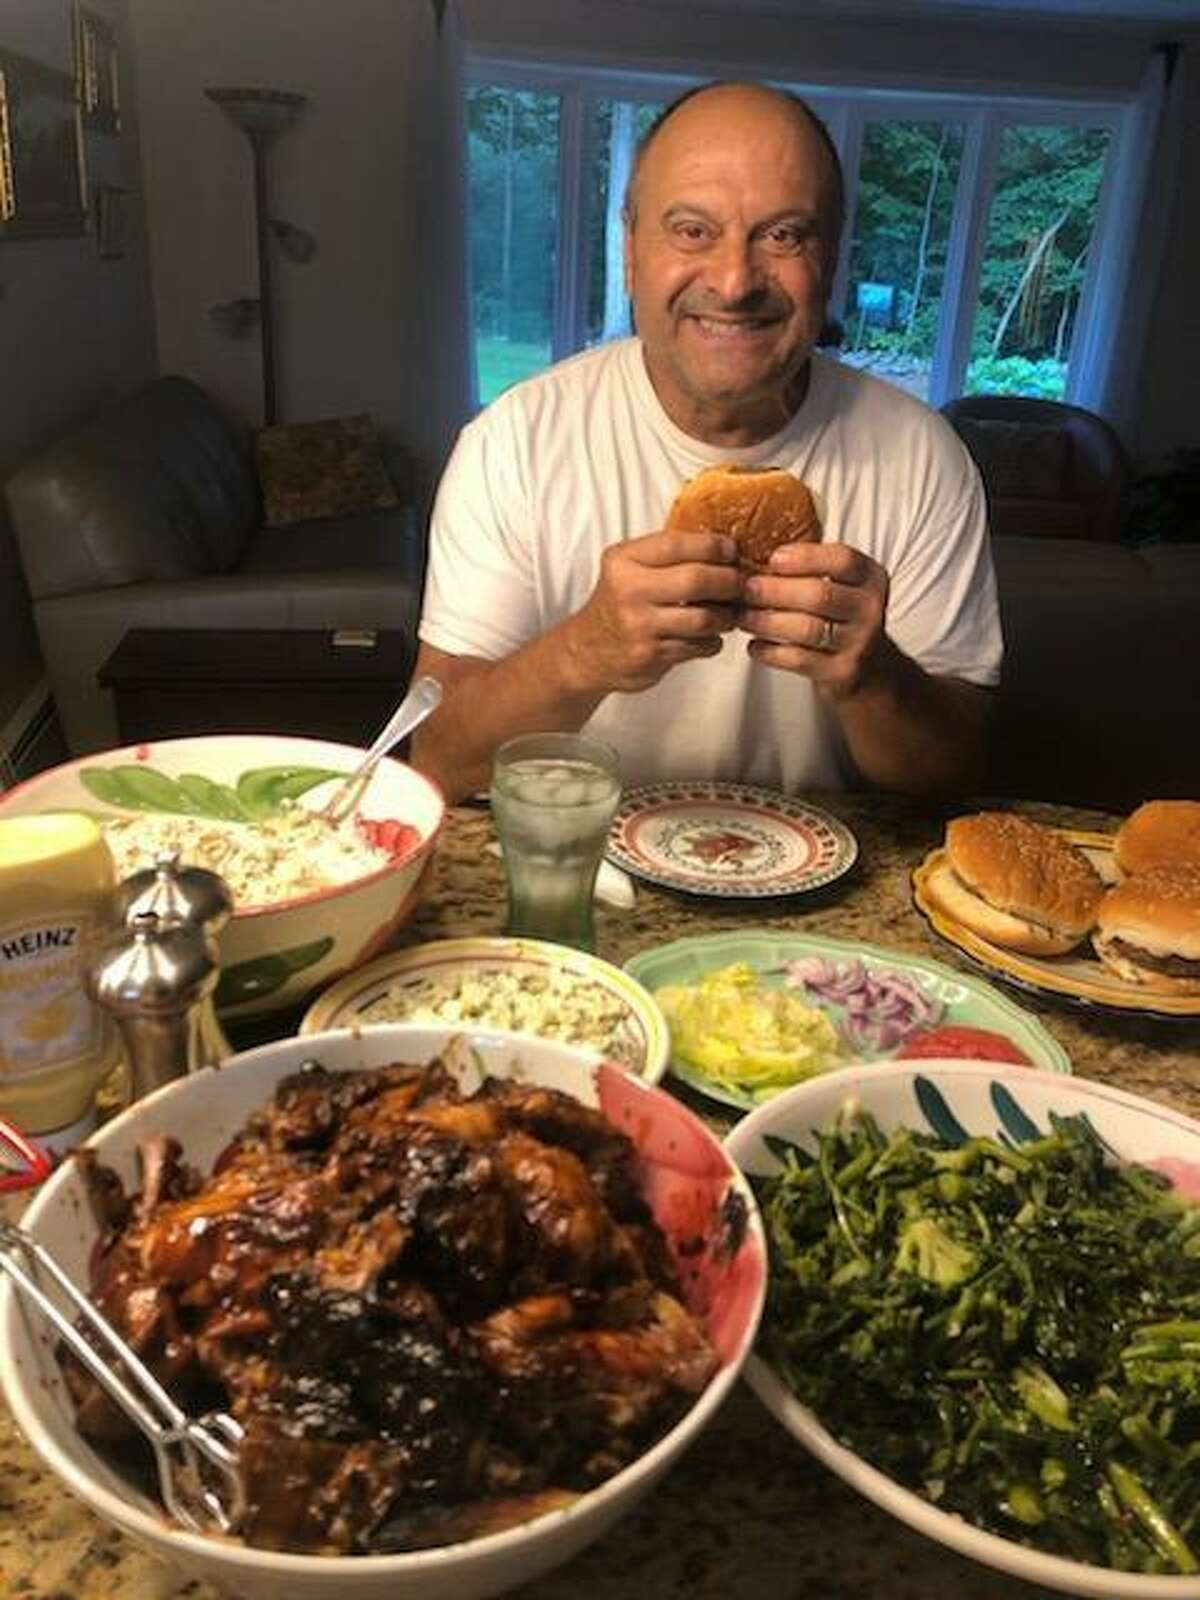 """Pete Leonetti sits down to another feast prepared by his wife of 39 years, Karen Leonetti. Pete and his meals have become a Facebook sensation, fist through the popular Facebook group, """"Wooster Square Cooks,"""" and now through Karen Leonetti's new Facebook group, """"Karen and Pete's Wooster Street Family."""""""